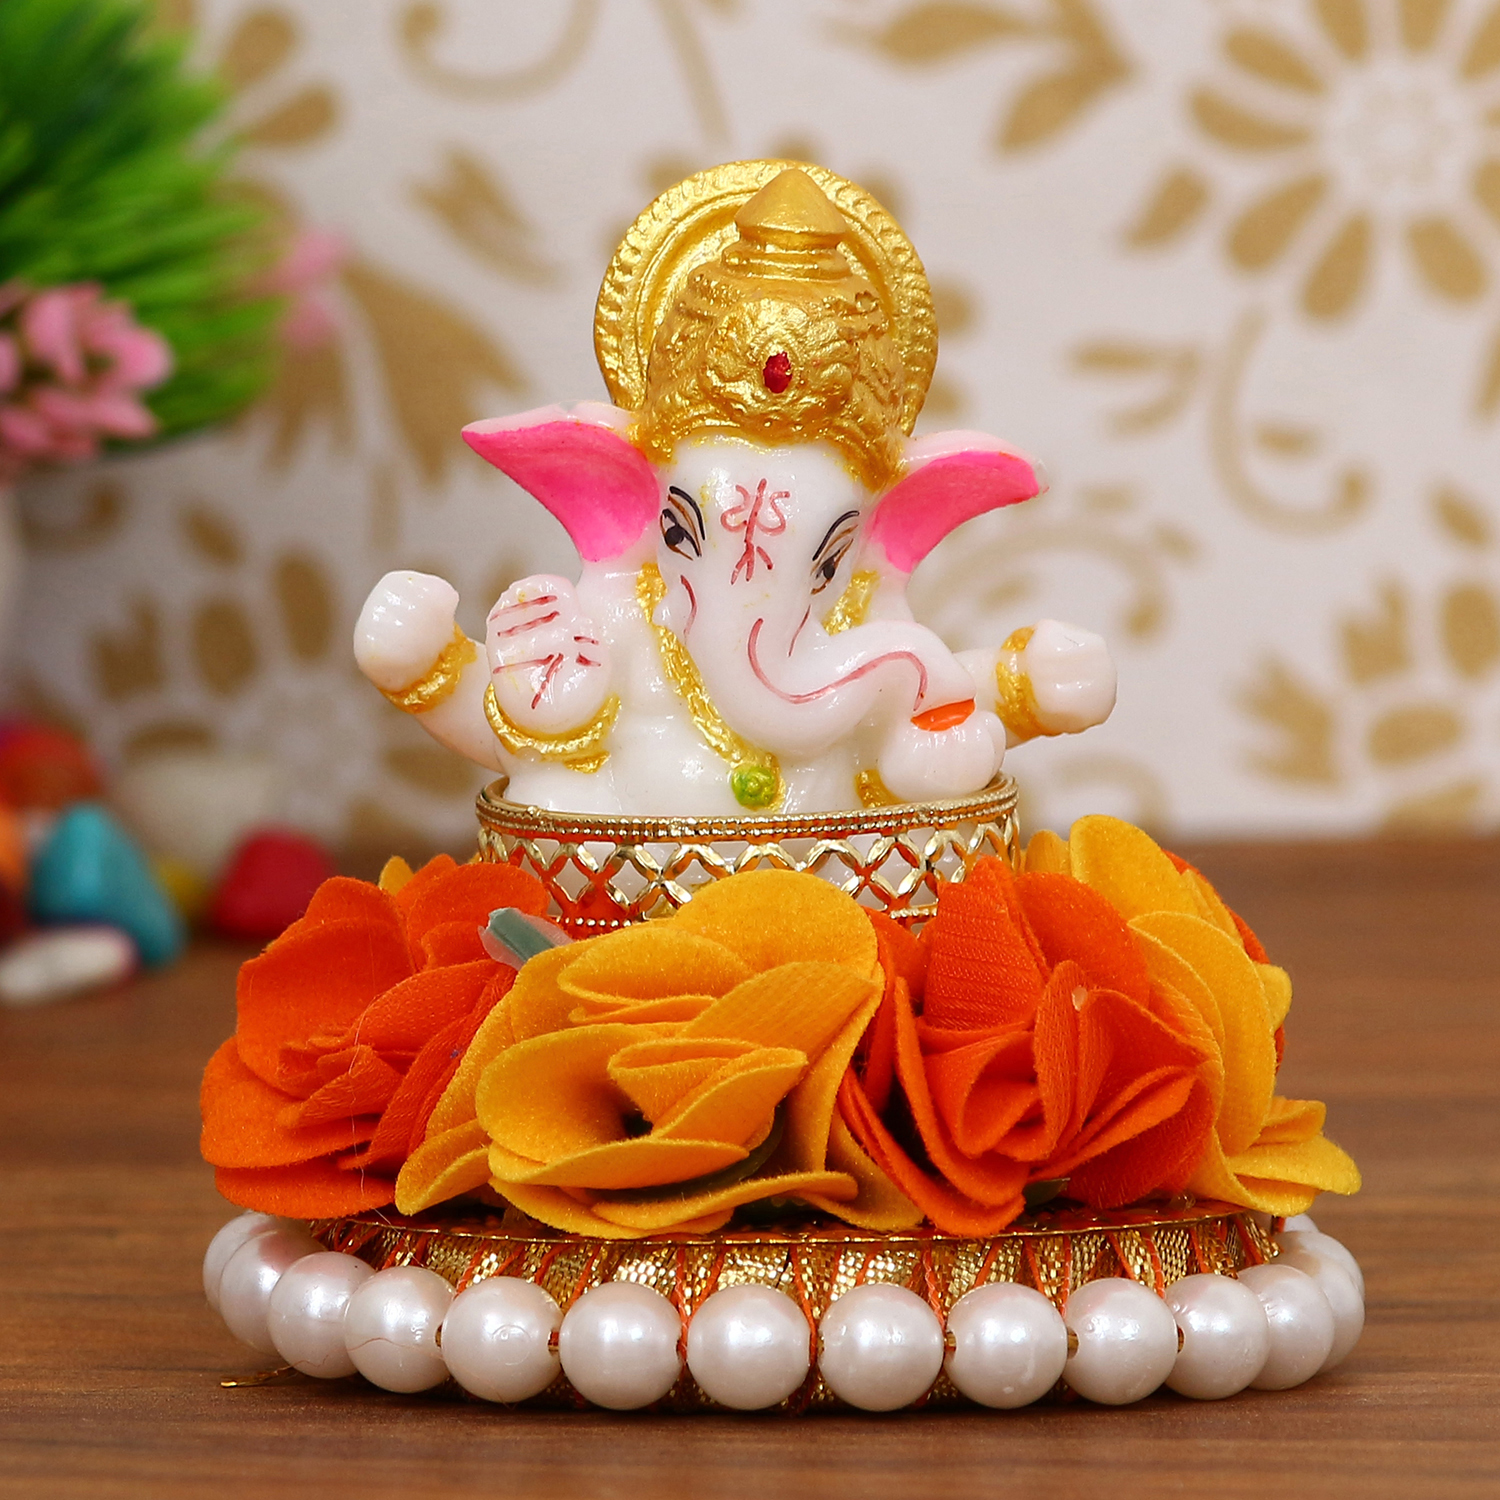 Lord Ganesha Idol on Decorative Handcrafted Plate with Orange and Yellow Flowers Indian Home Decor